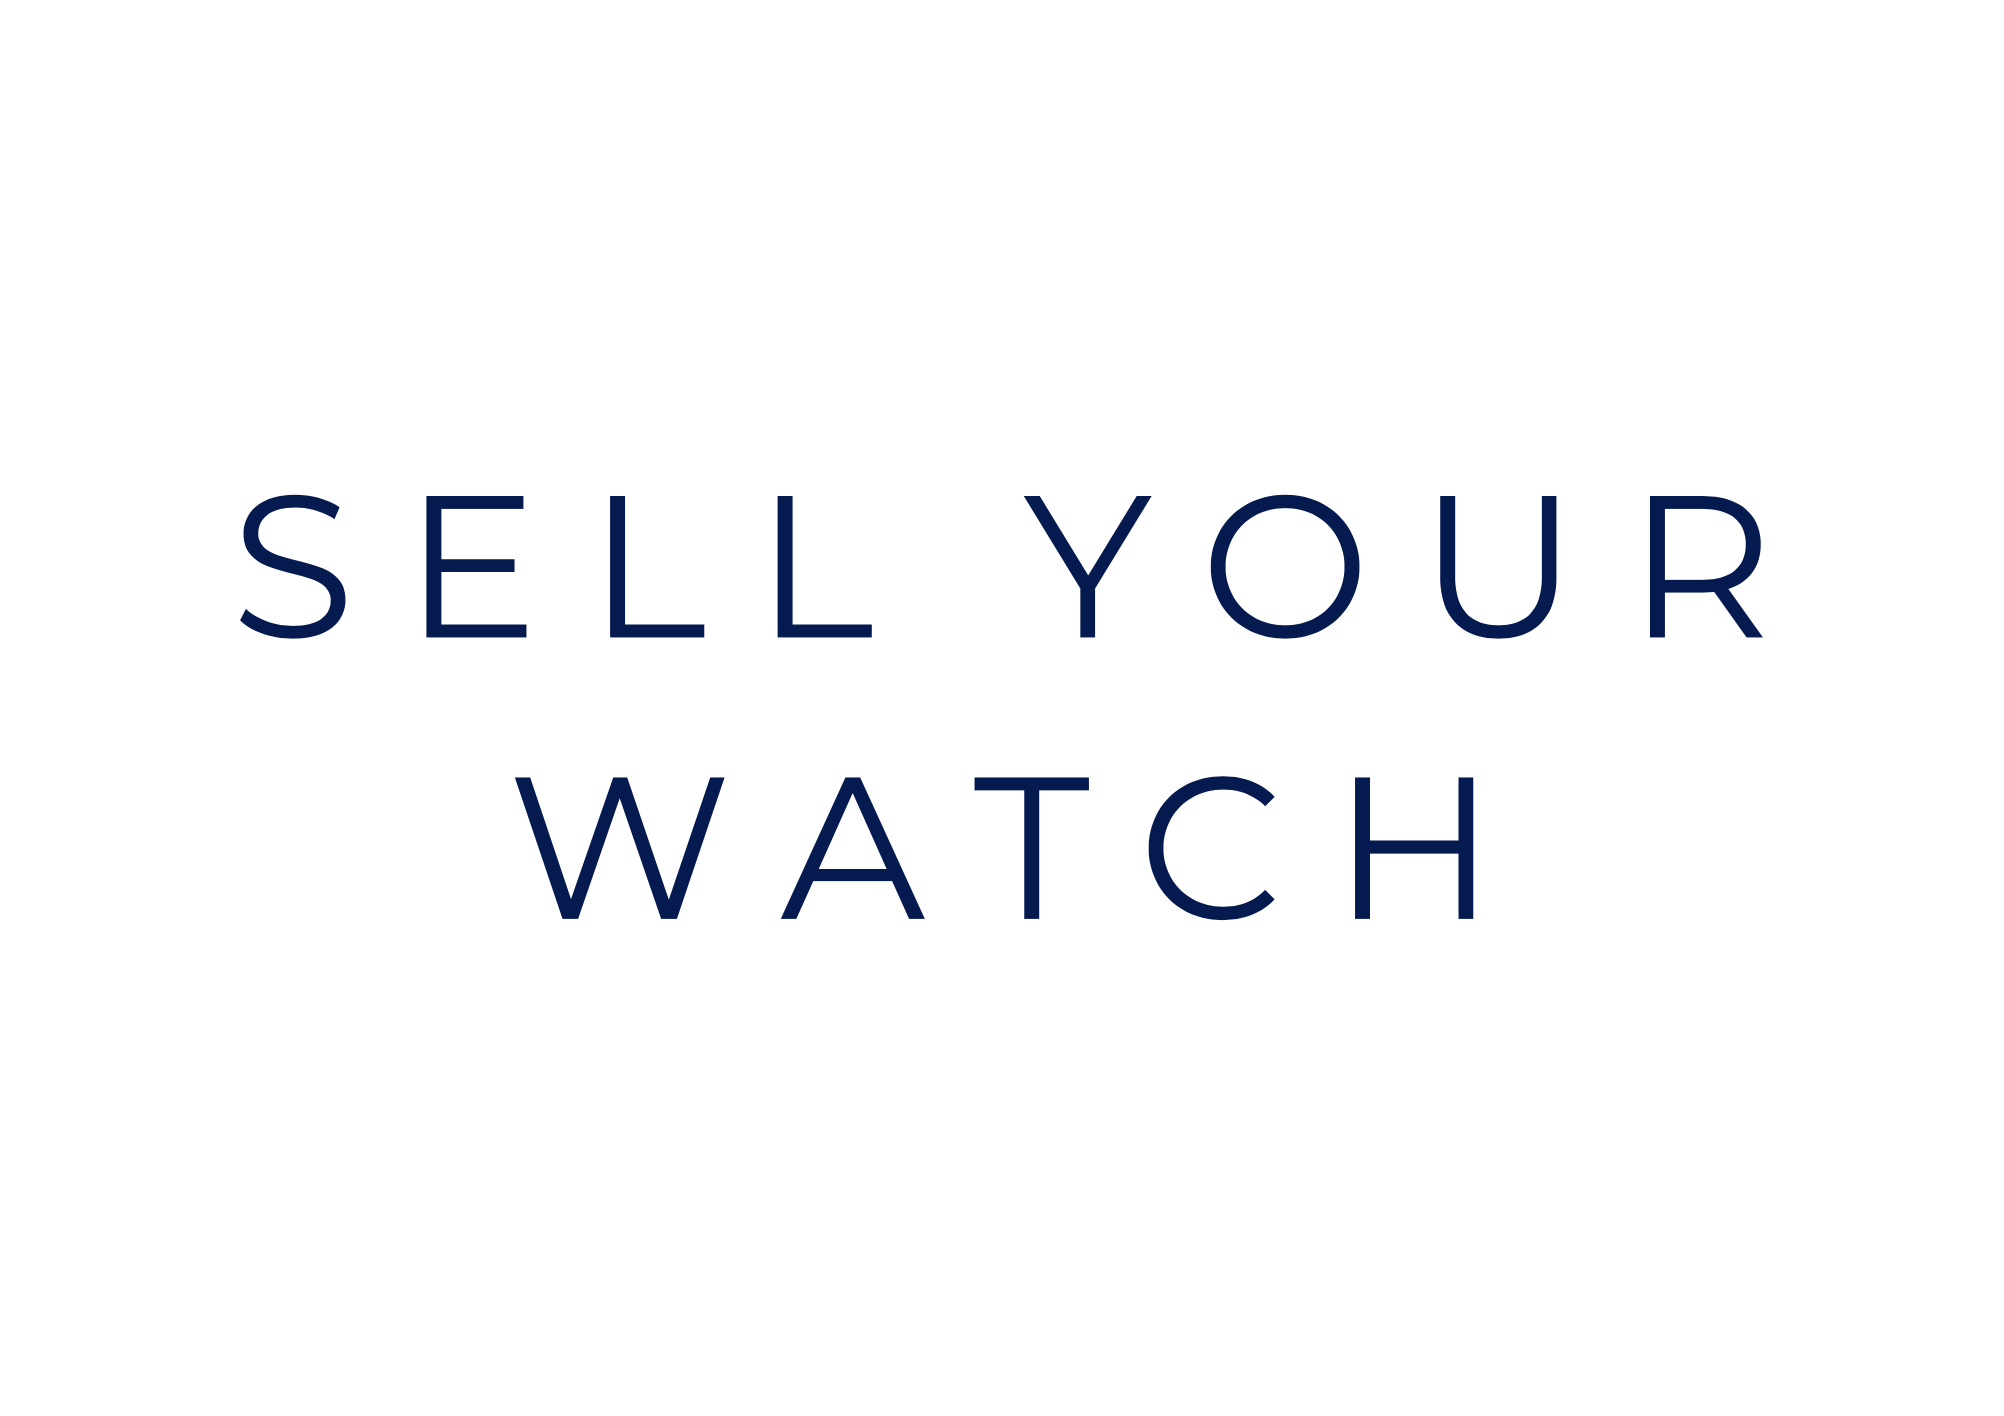 Sell your watch!